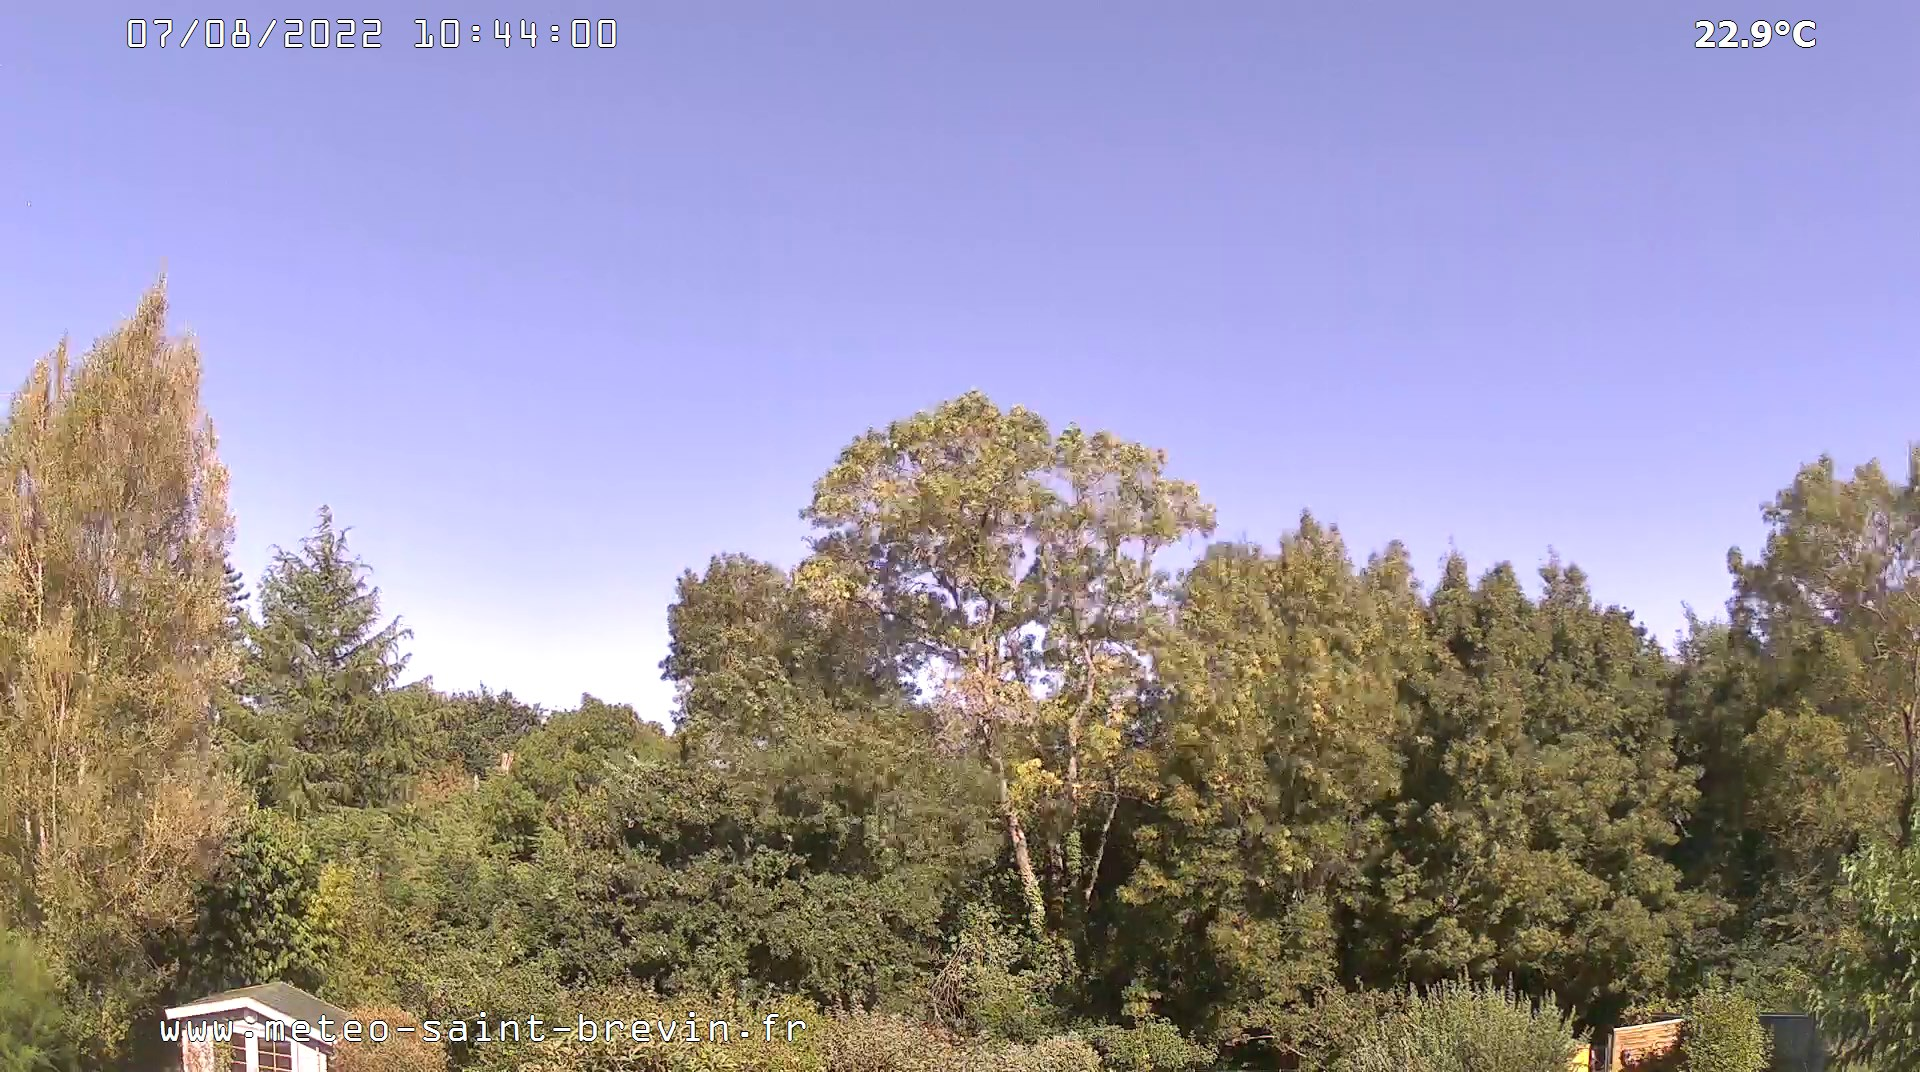 Webcam de Saint-Brevin